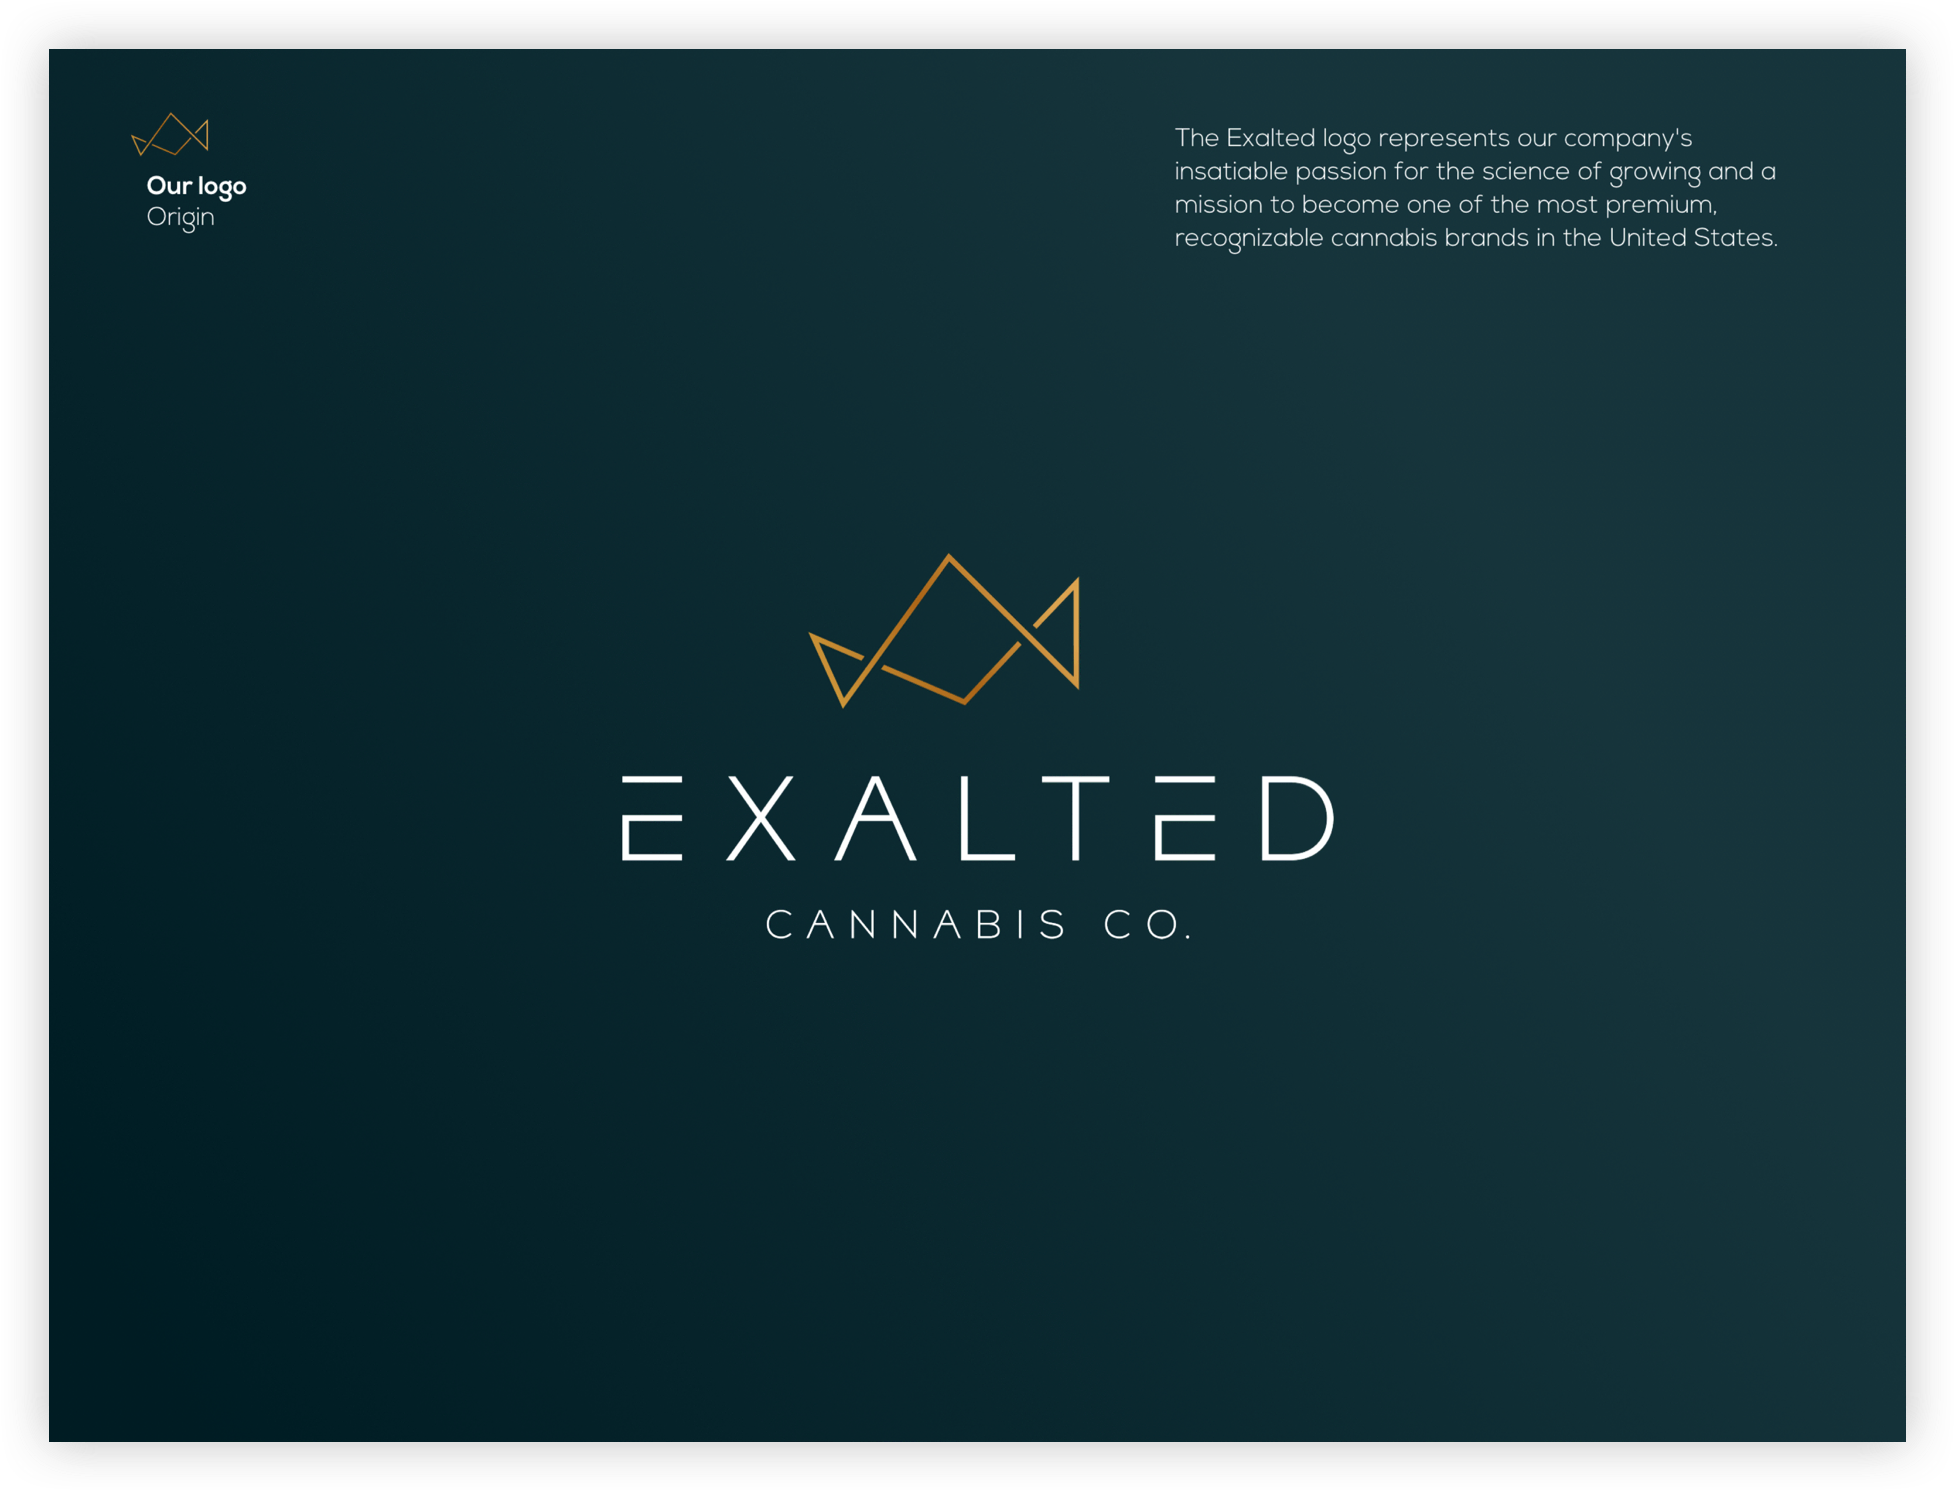 Exalted brand guide front cover. Text reads: Our logo – Origin – The Exalted logo represents our company's insatiable passion for the science of growing and a mission to become one of the most premium, recognizable cannabis brands in the United States.